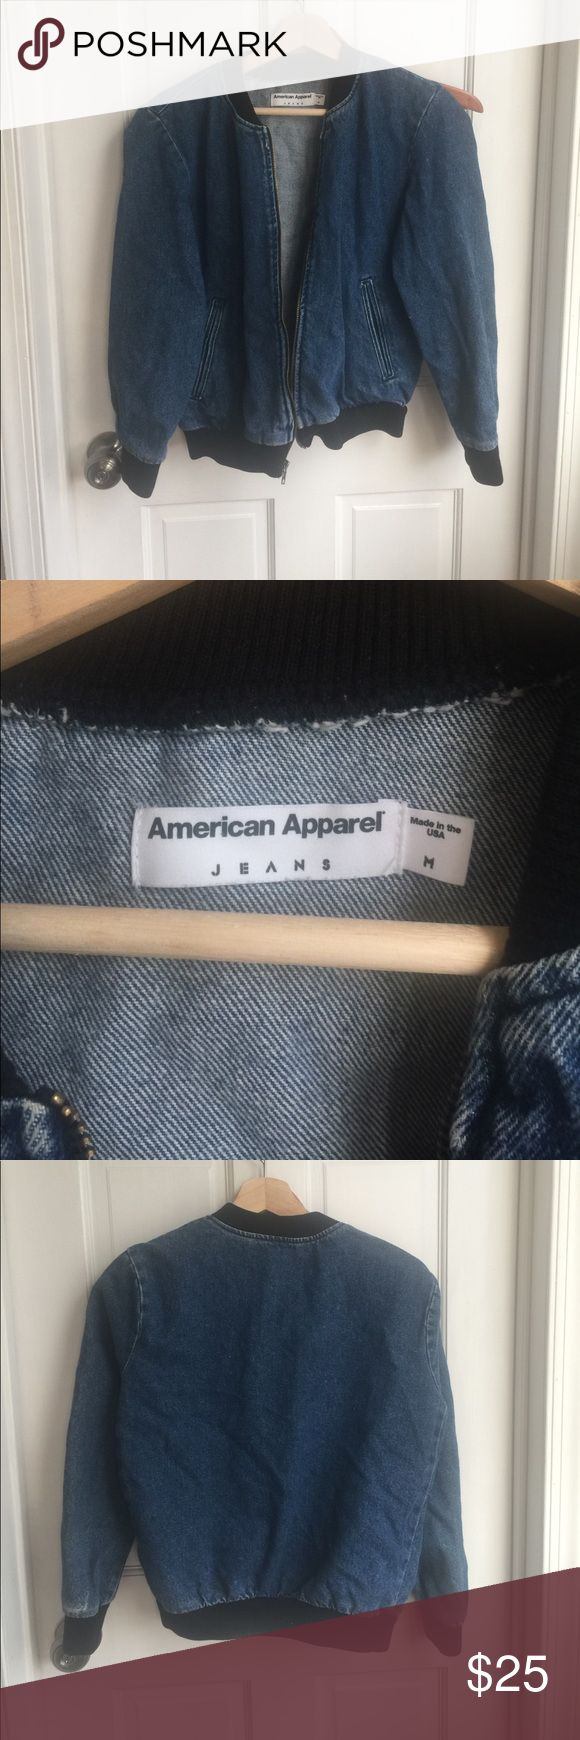 American Apparel Denim Bomber Zip Up 100% Cotton. Size medium by fits like a small. Lightly worn, slightly cropped. Great condition and not worn in! American Apparel Jackets & Coats Jean Jackets